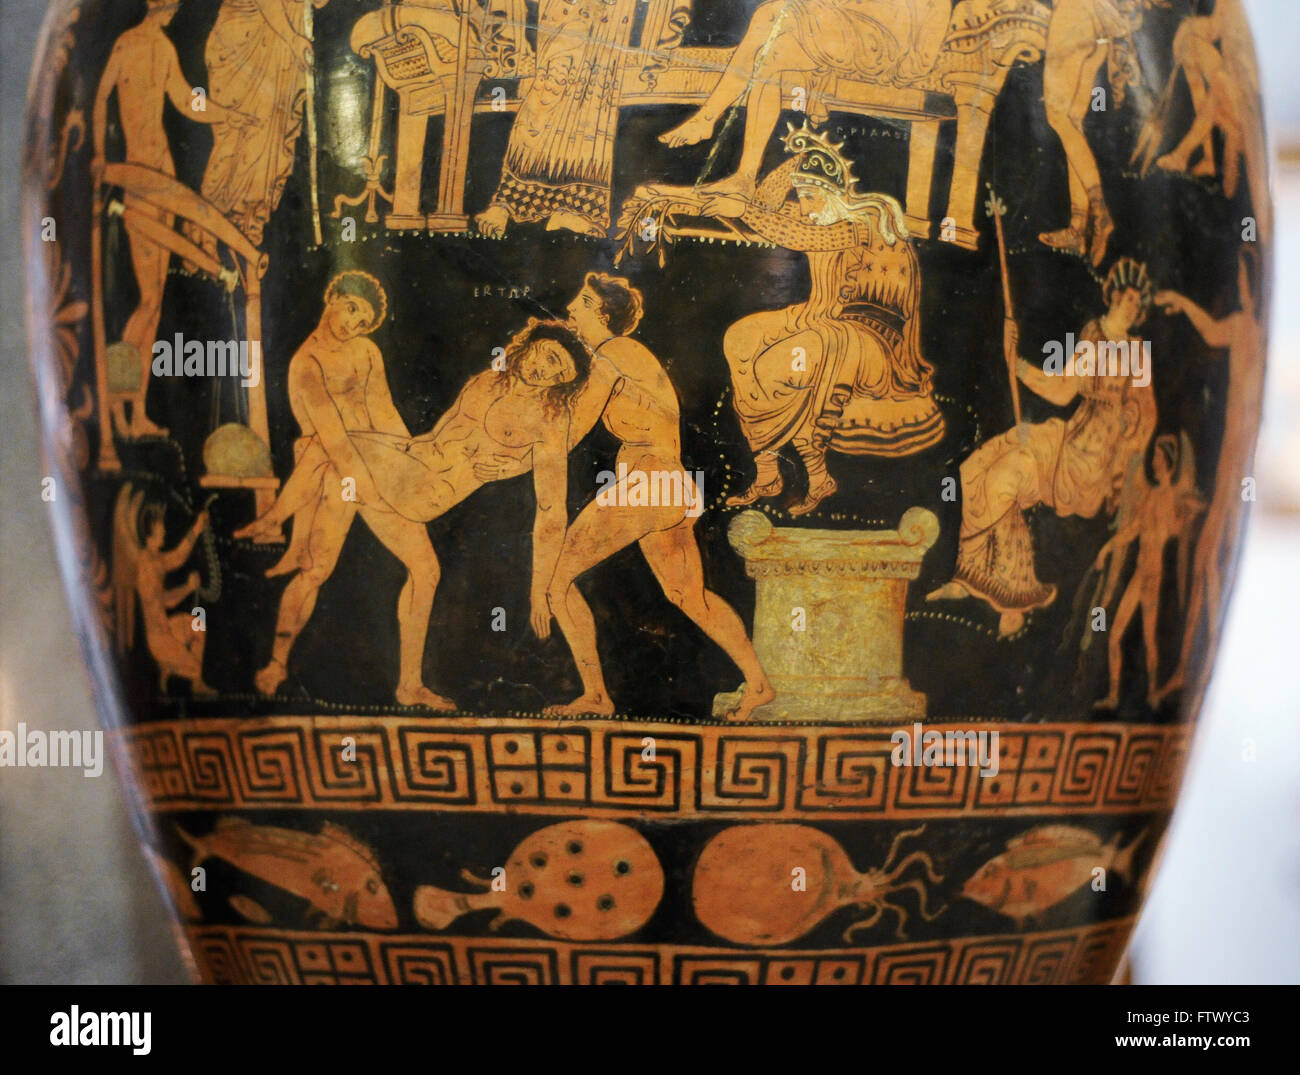 Greek art. Red-figure volute-krater. Ransom of Hector. Apulia, Southern Italy. Ca. 350 BC. The Lycurgus painter. - Stock Image